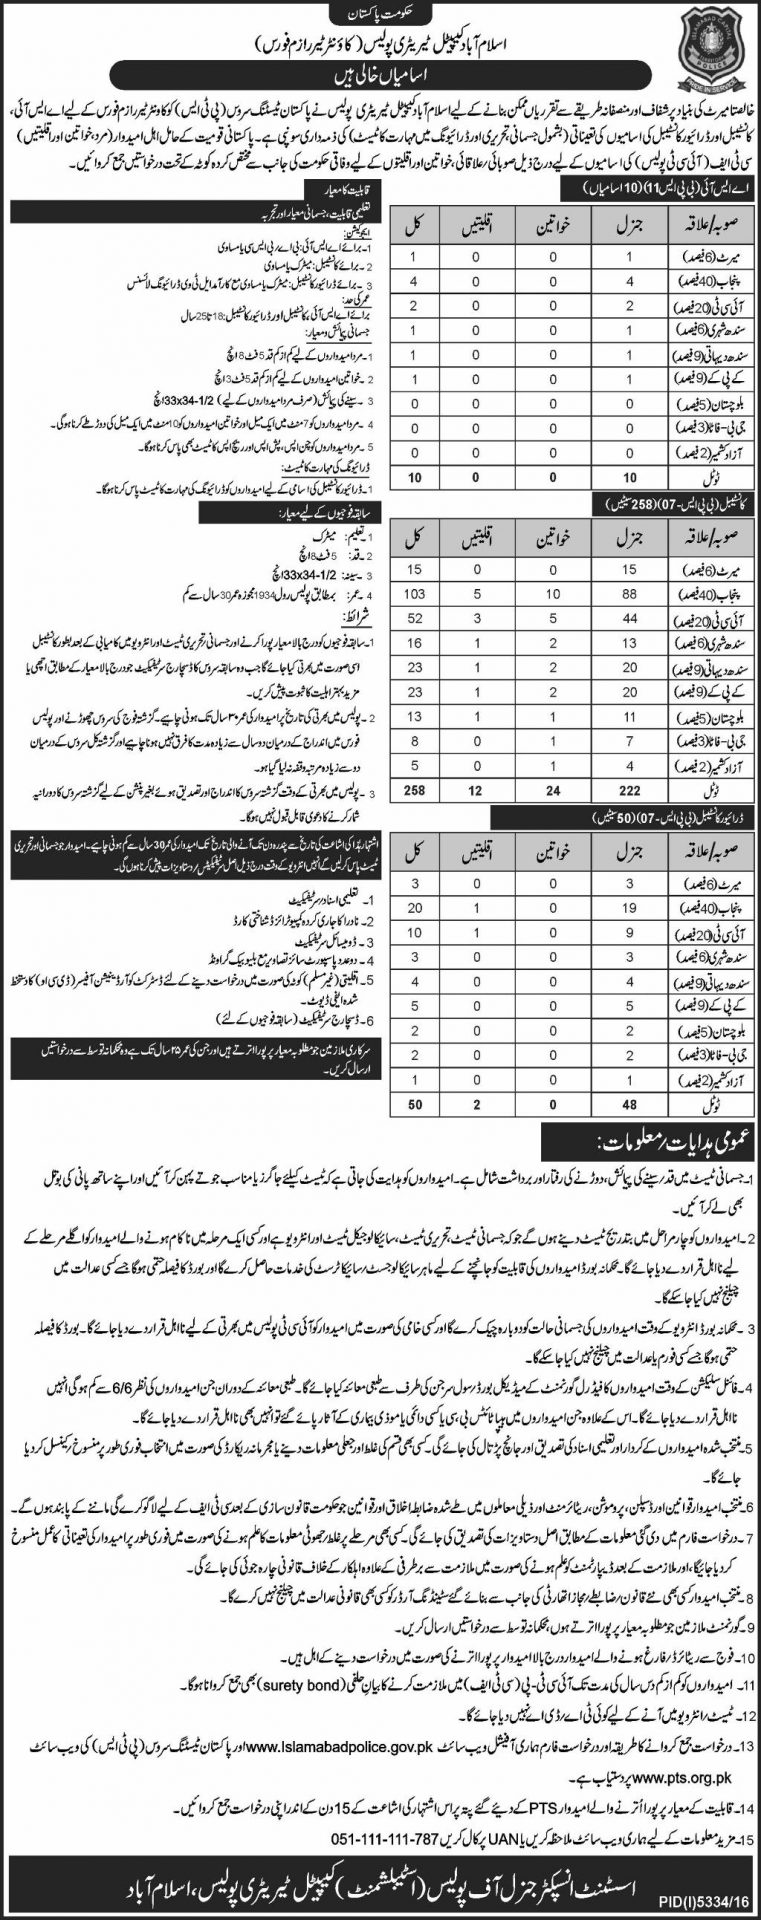 Islamabad Capital Territory Police ICTP Jobs 2017 Counter Terrorism Force PTS Form Date